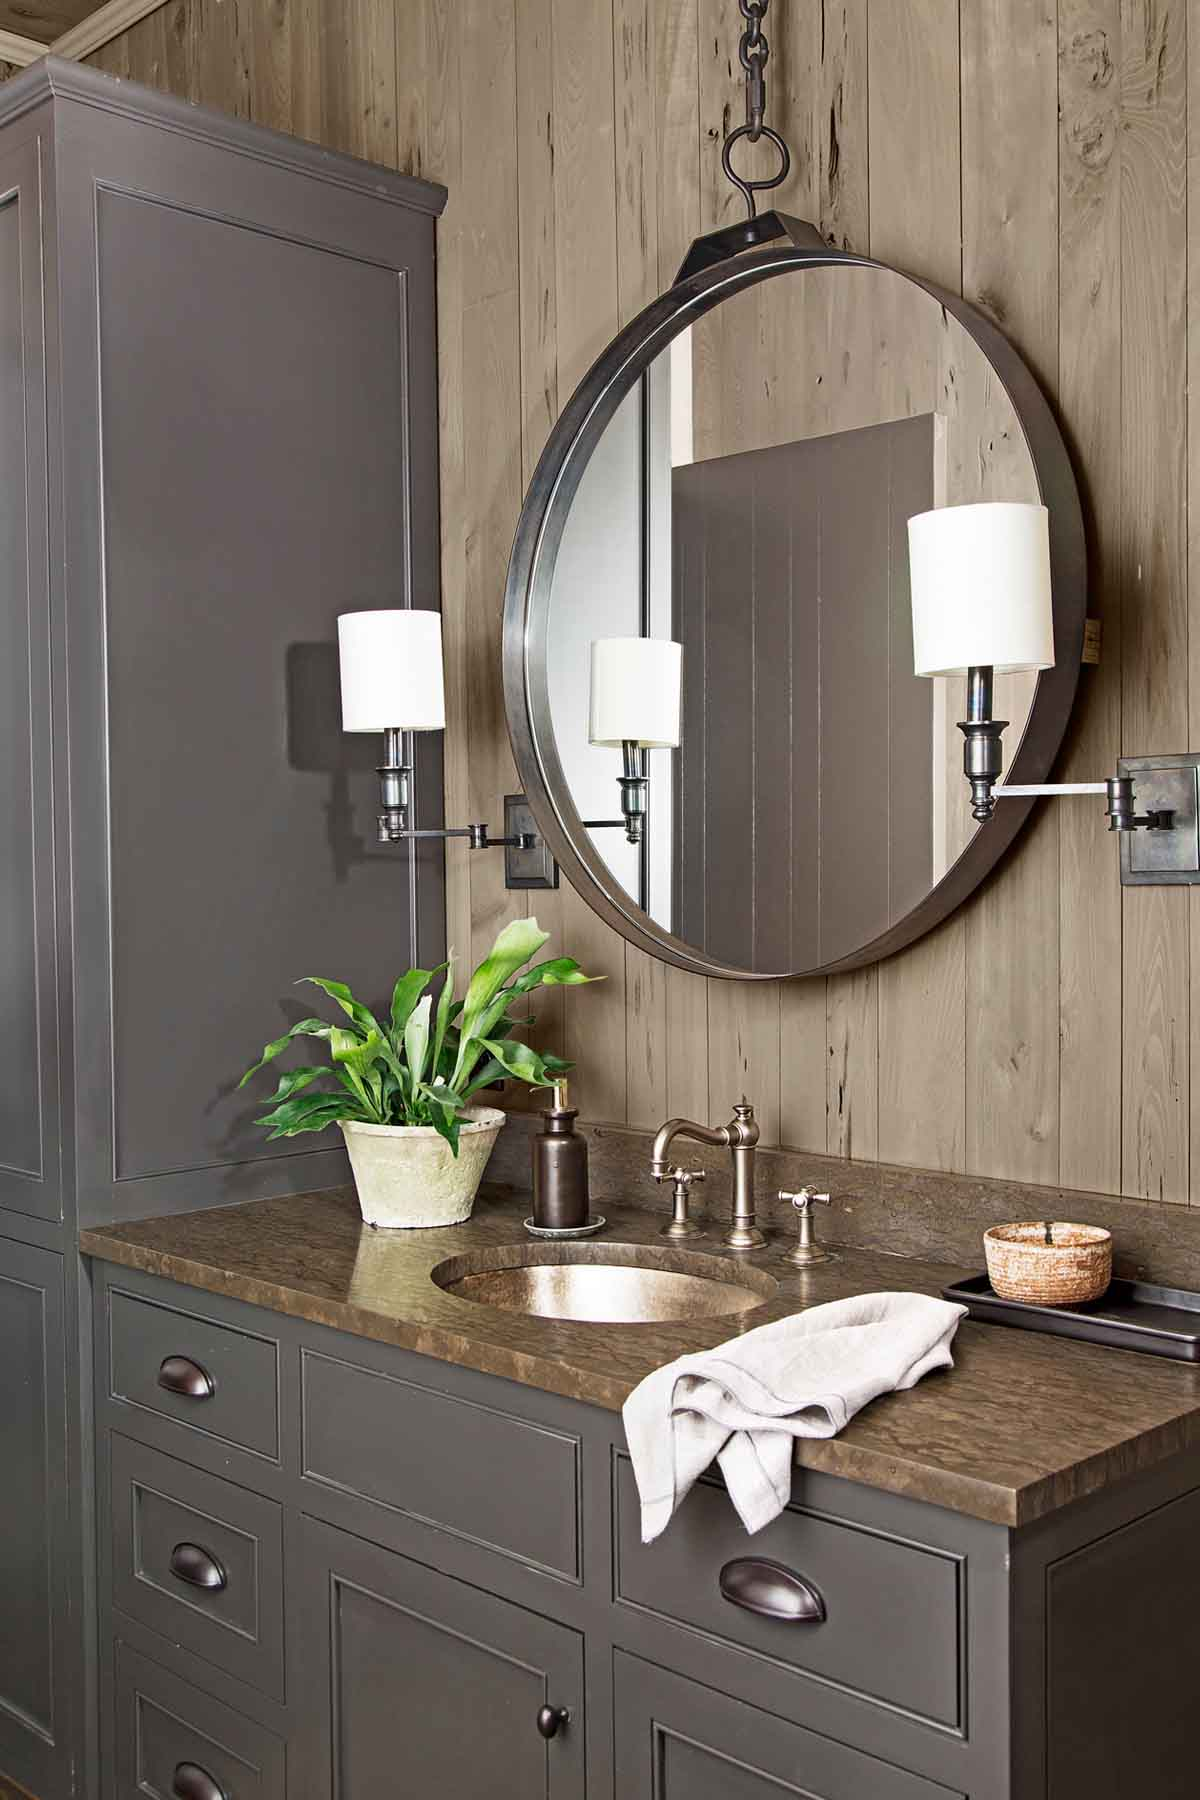 Rustic Bathroom 37 rustic bathroom decor ideas - rustic modern bathroom designs